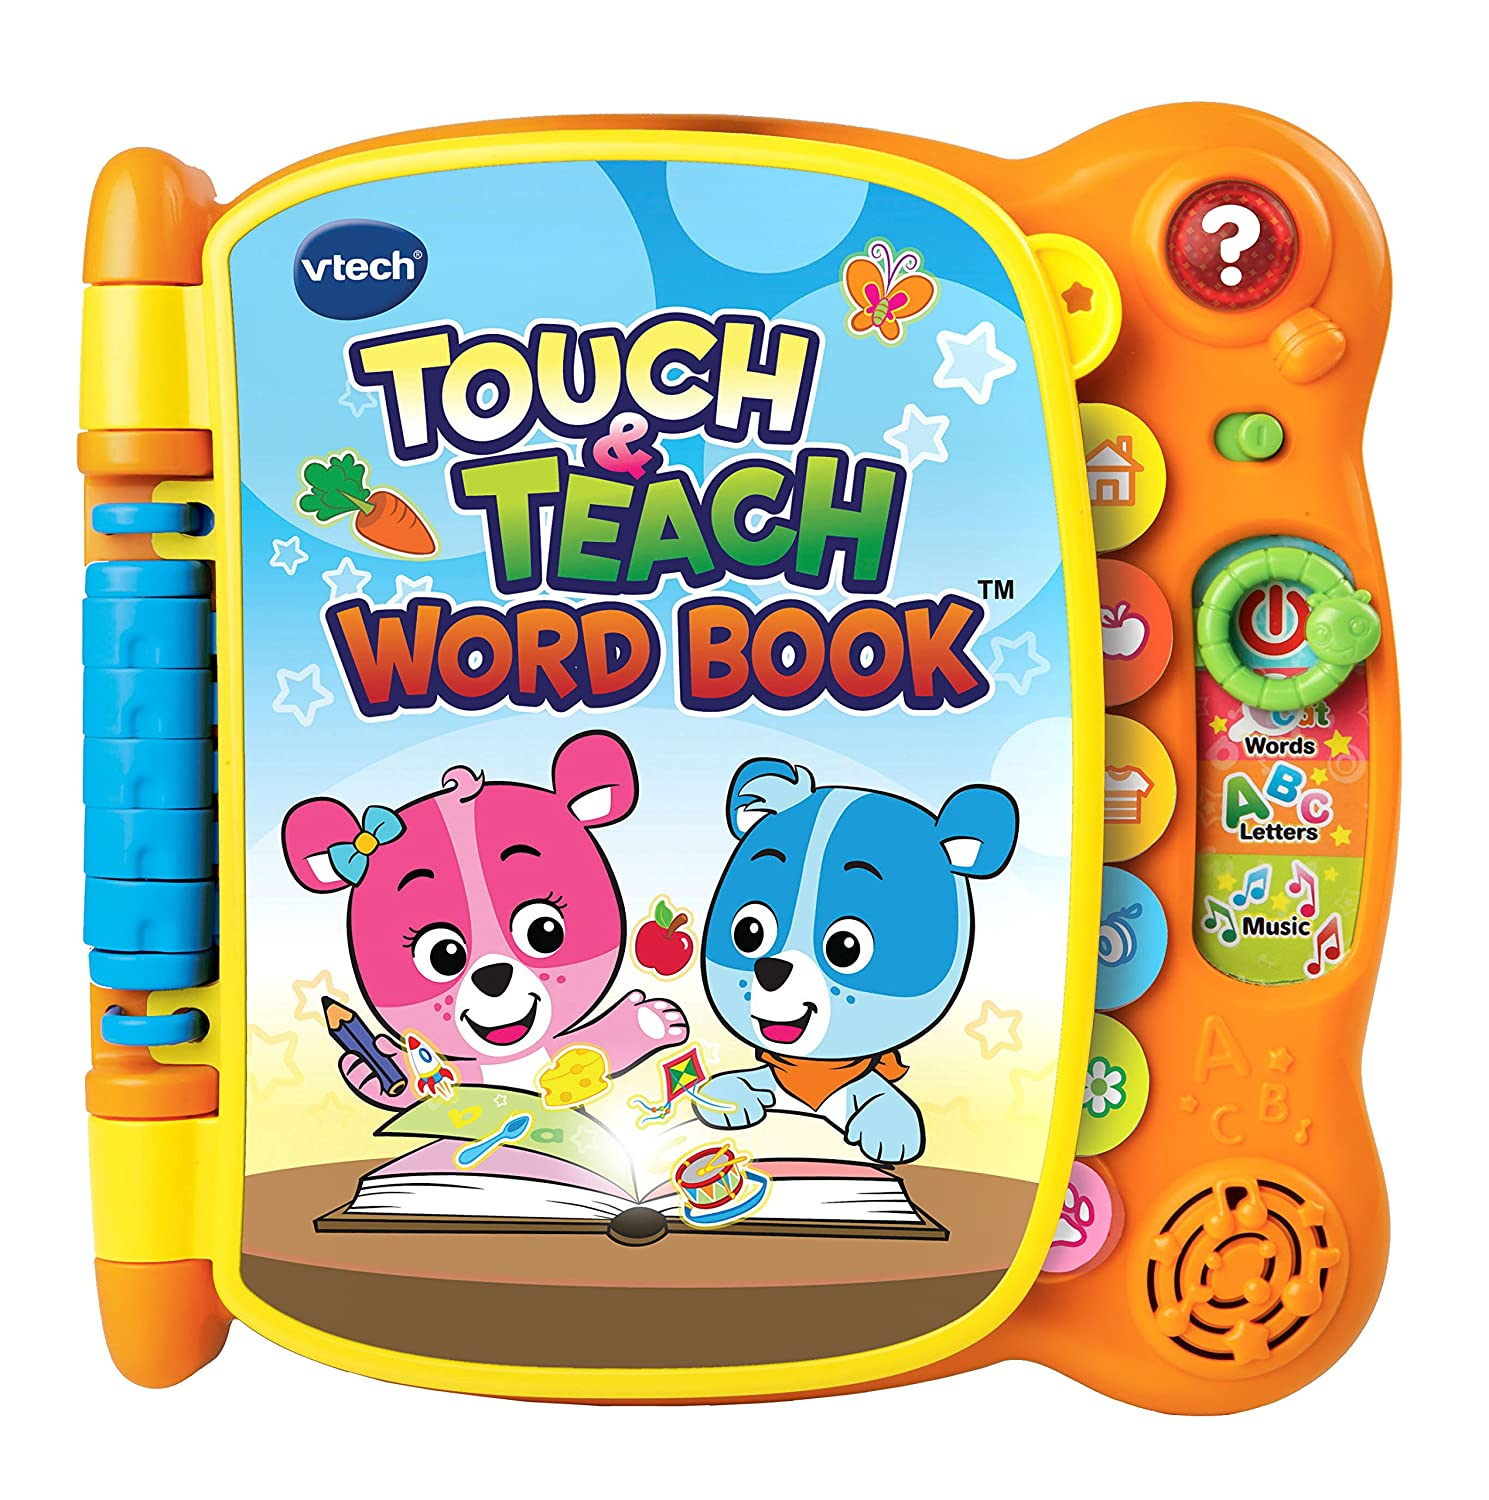 VTech Touch & Teach Word Book (Frustration Free Packaging) VTech--Import 80-141601